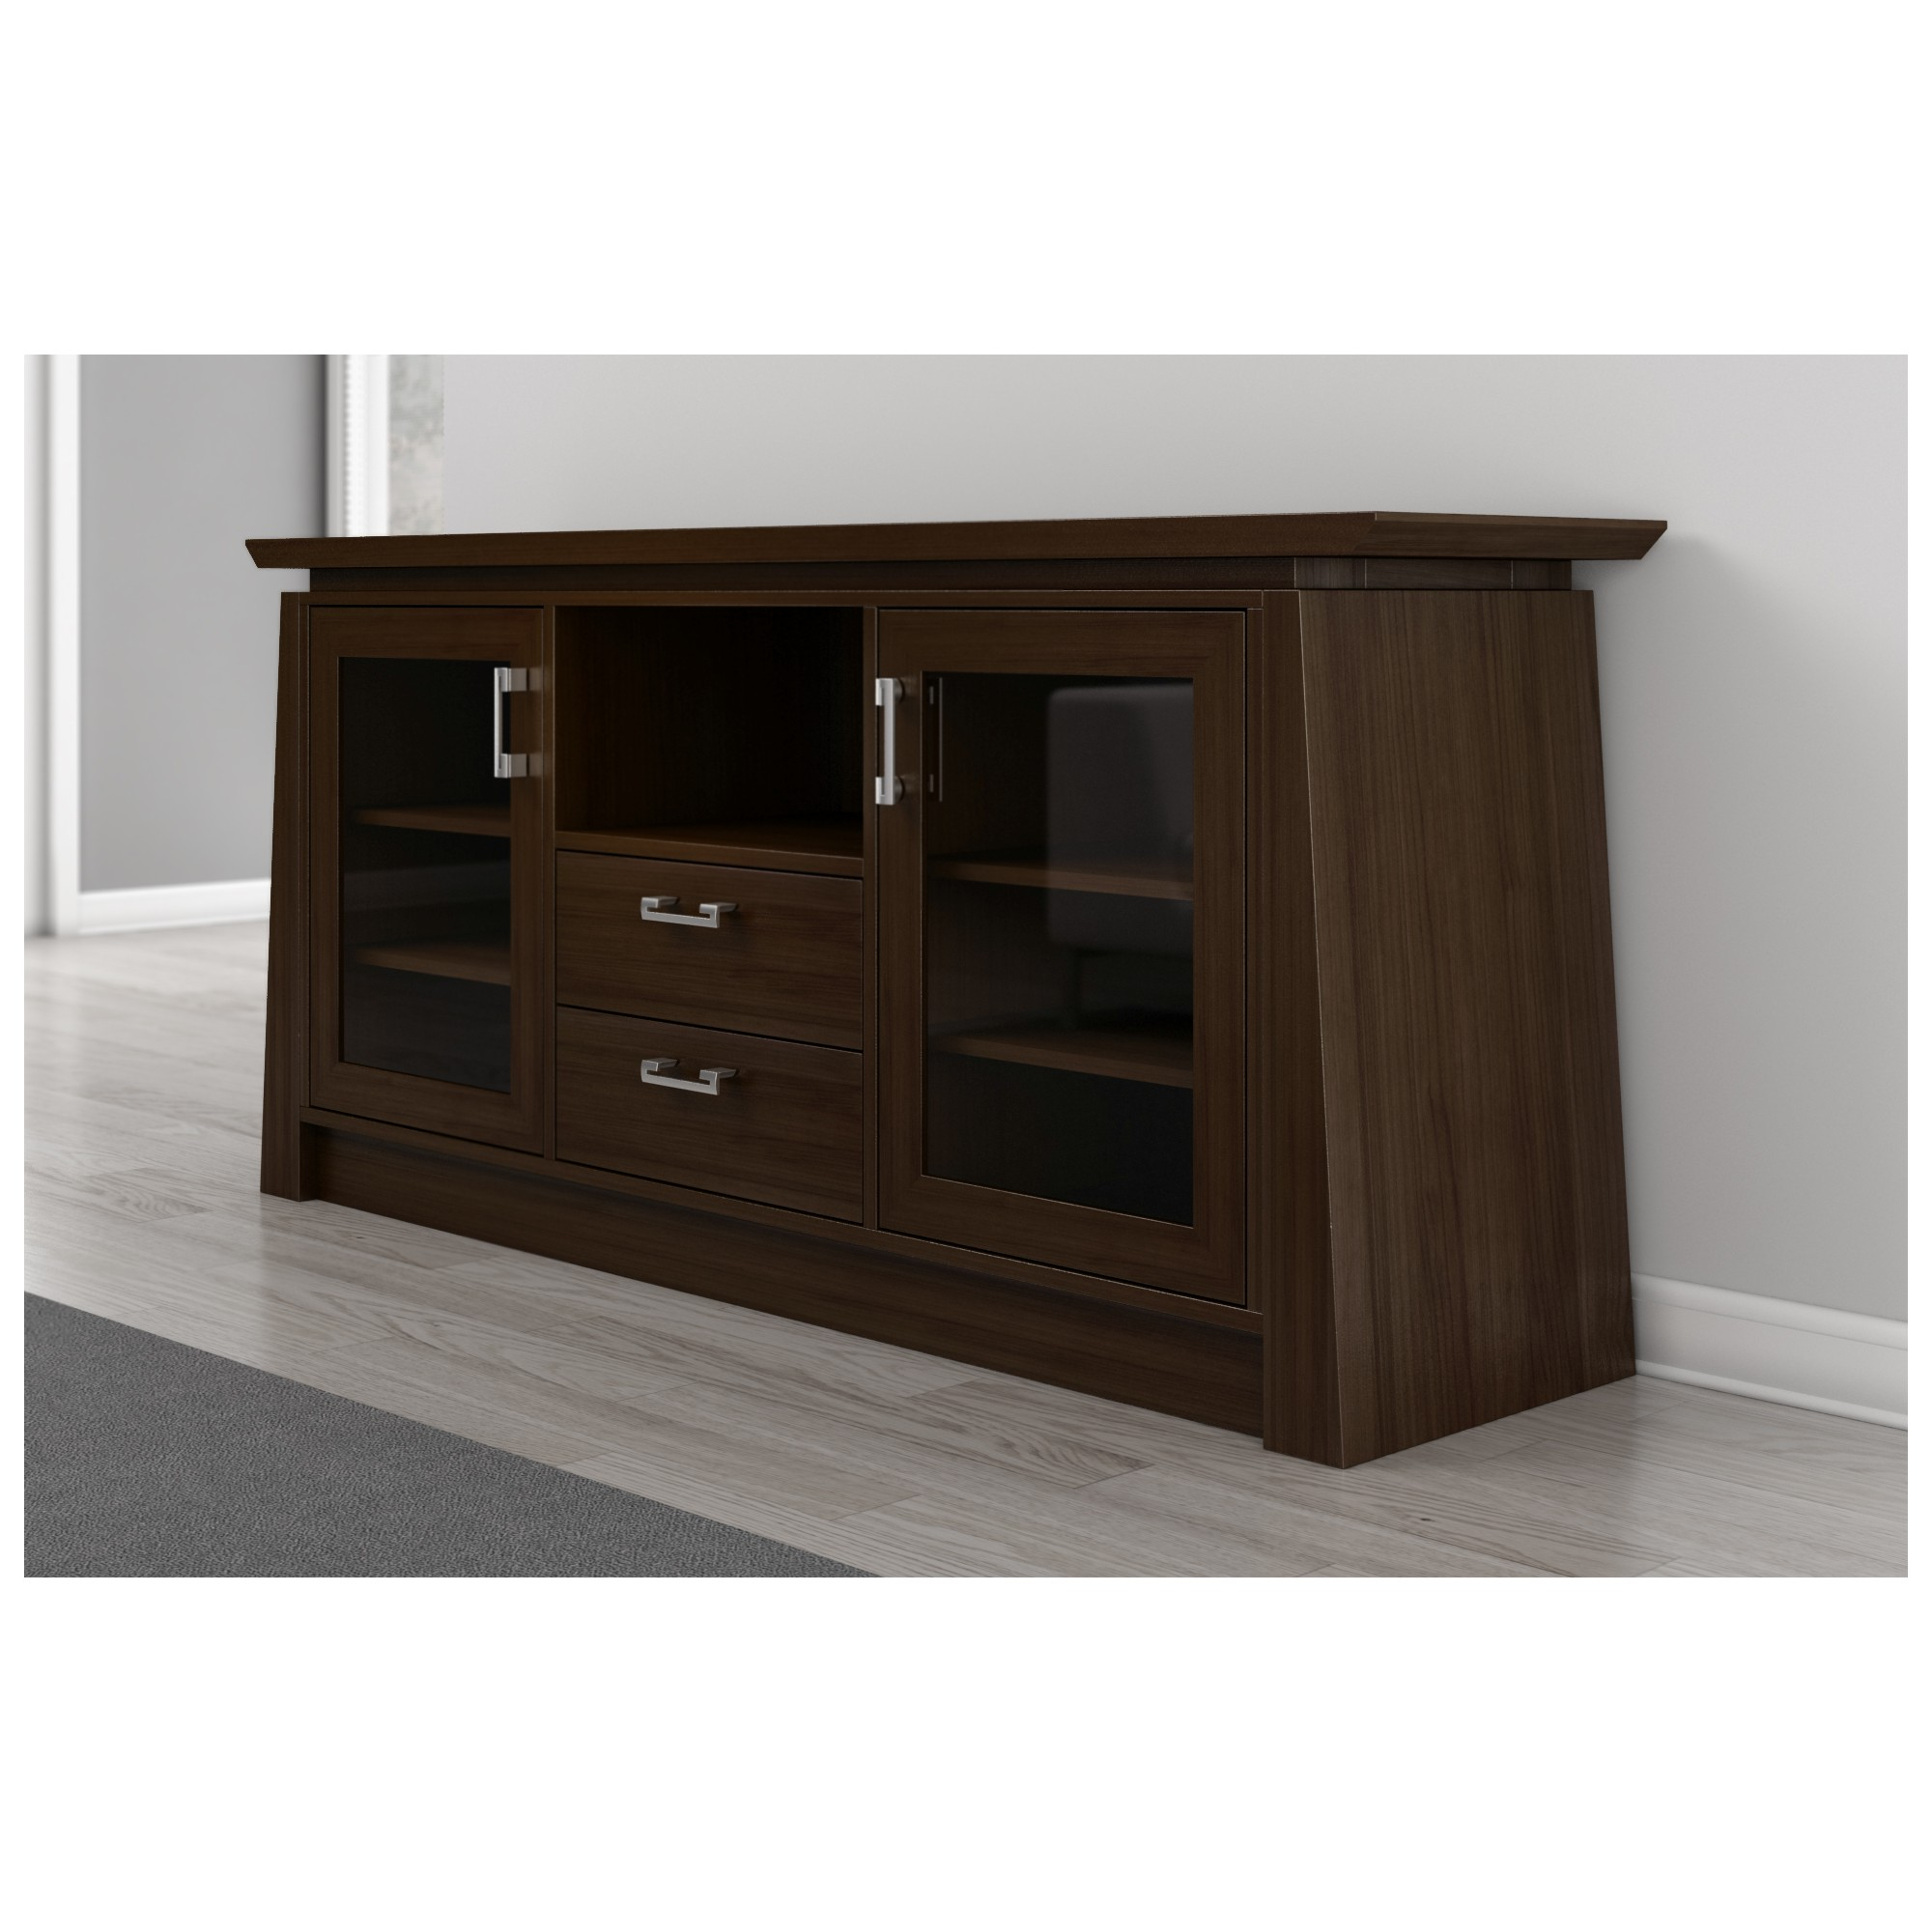 Splendent Larger Tv Stands Entertainment Centers In Elroy Tv Stand Pertaining To Popular Asian Tv Cabinets (Gallery 2 of 20)